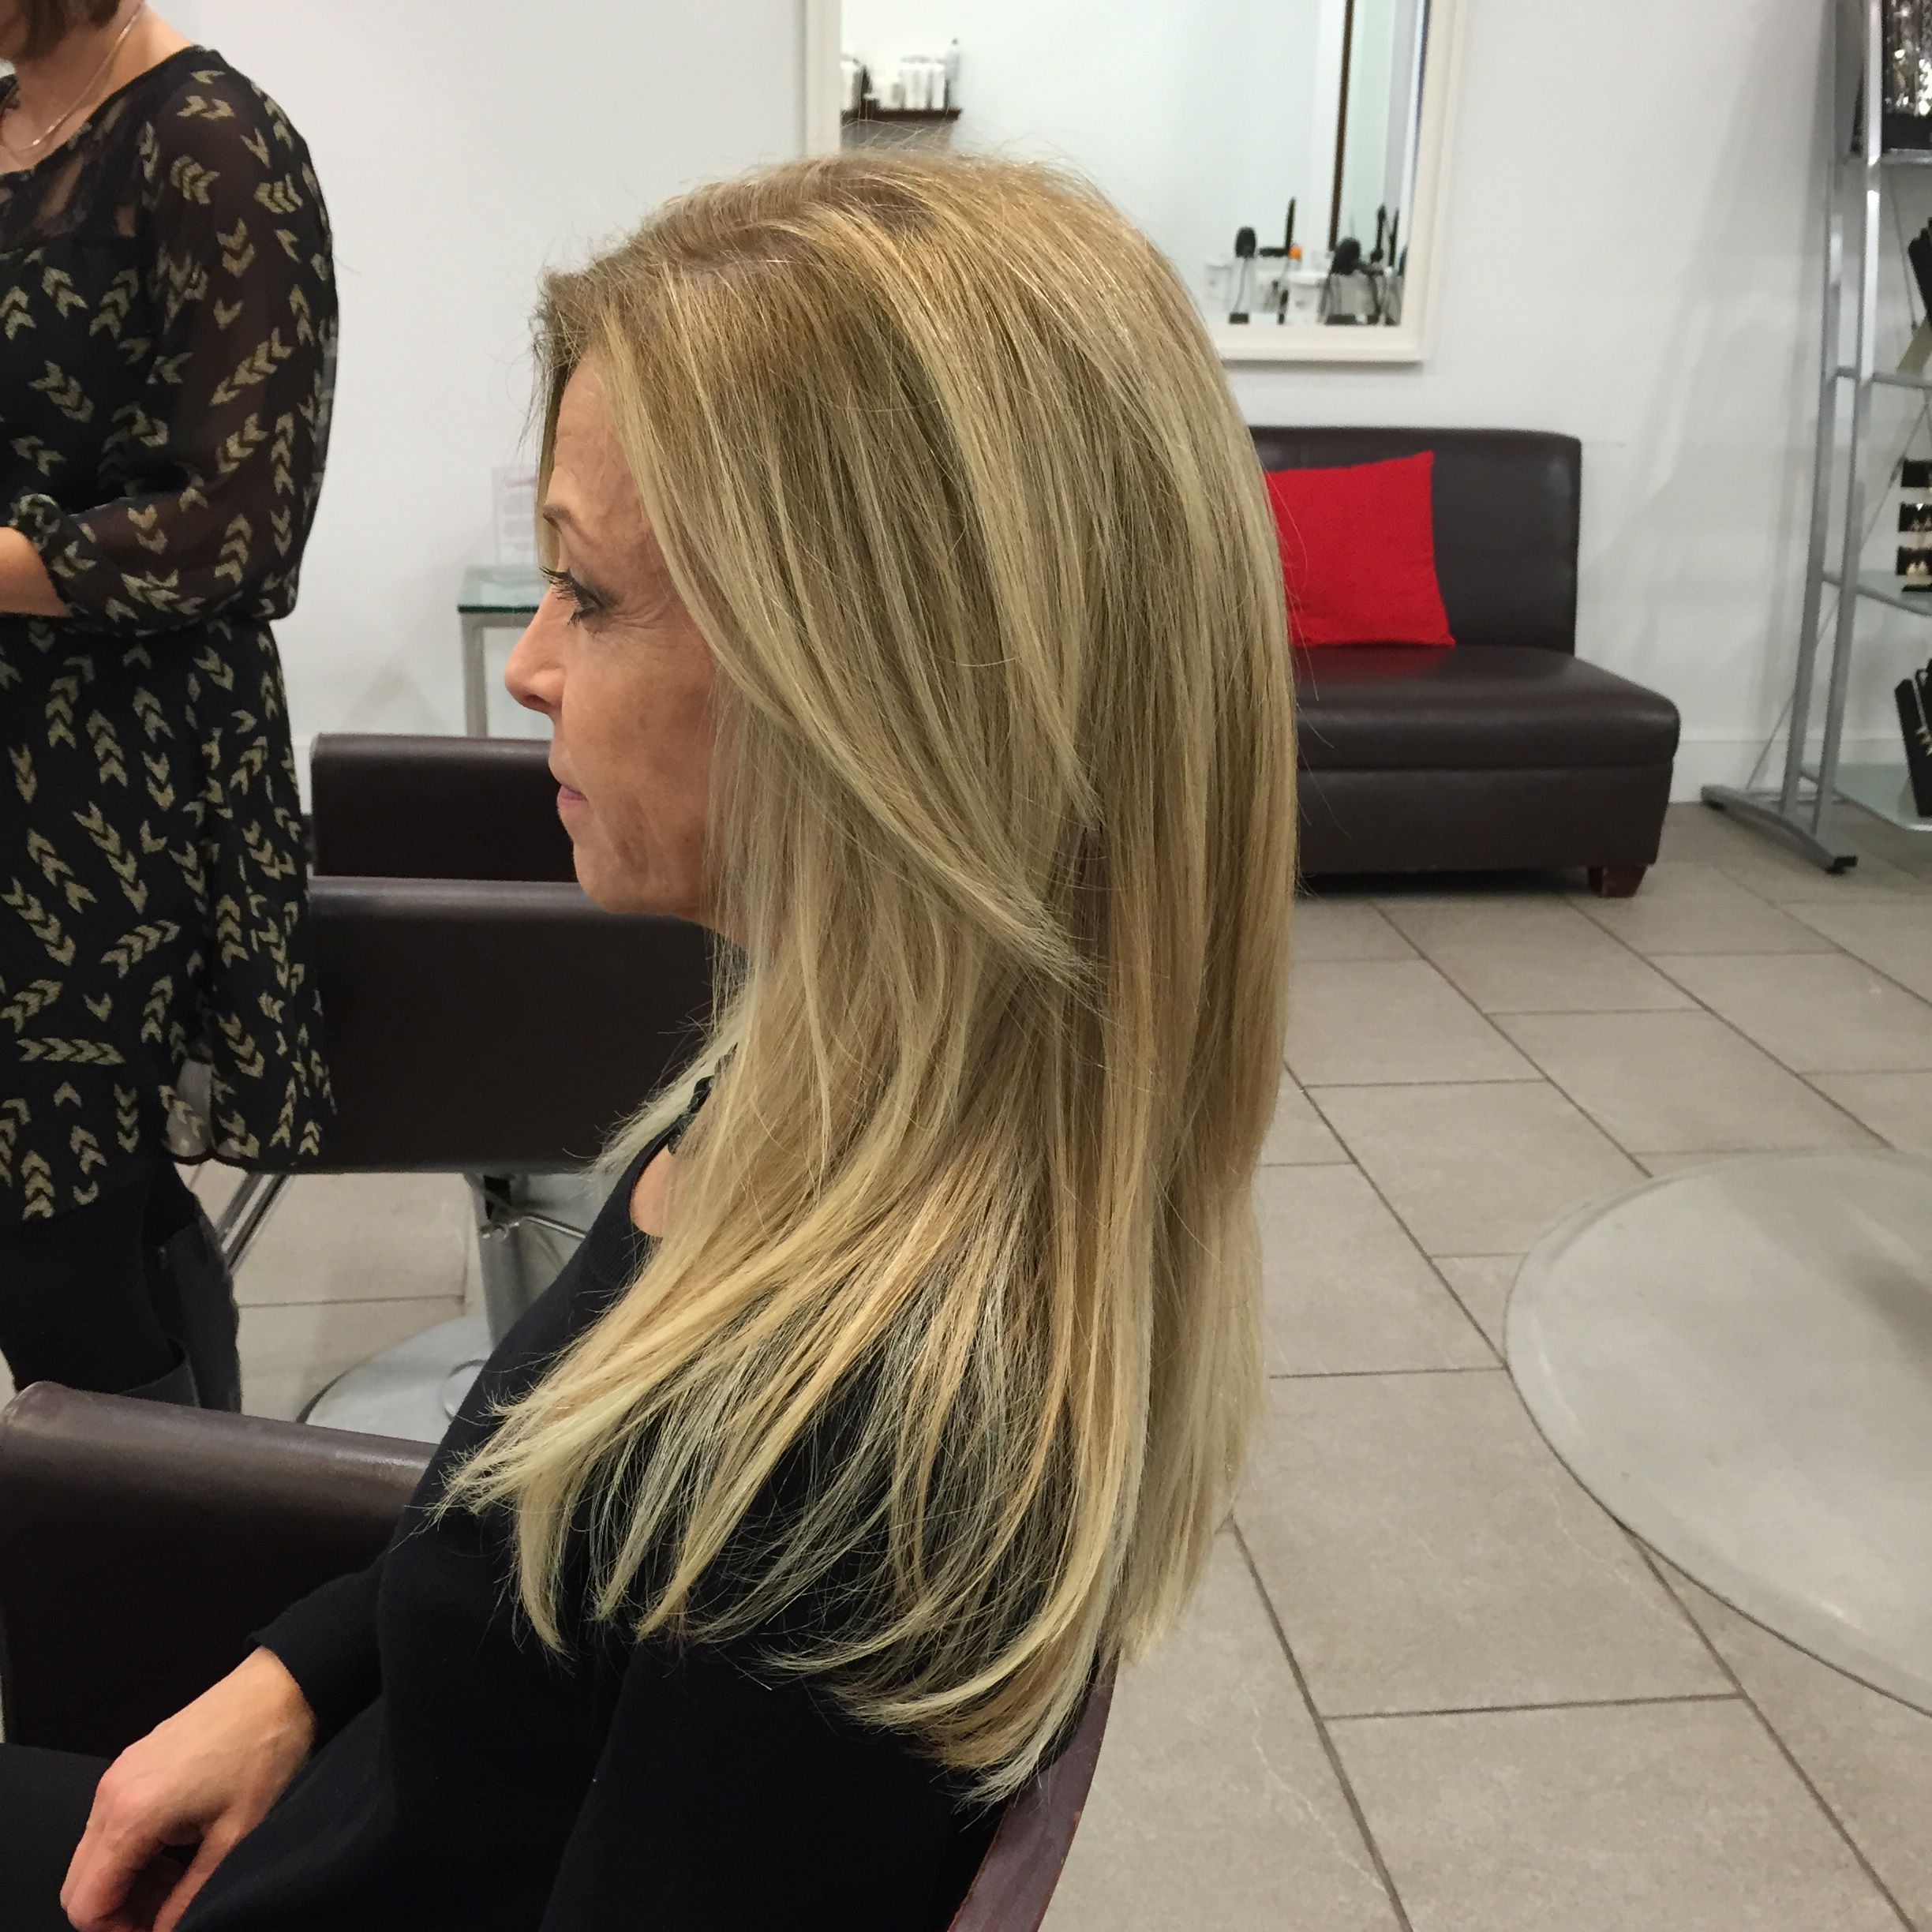 14 Of Hairdreams Extension Hairdreams Extensions Pinterest